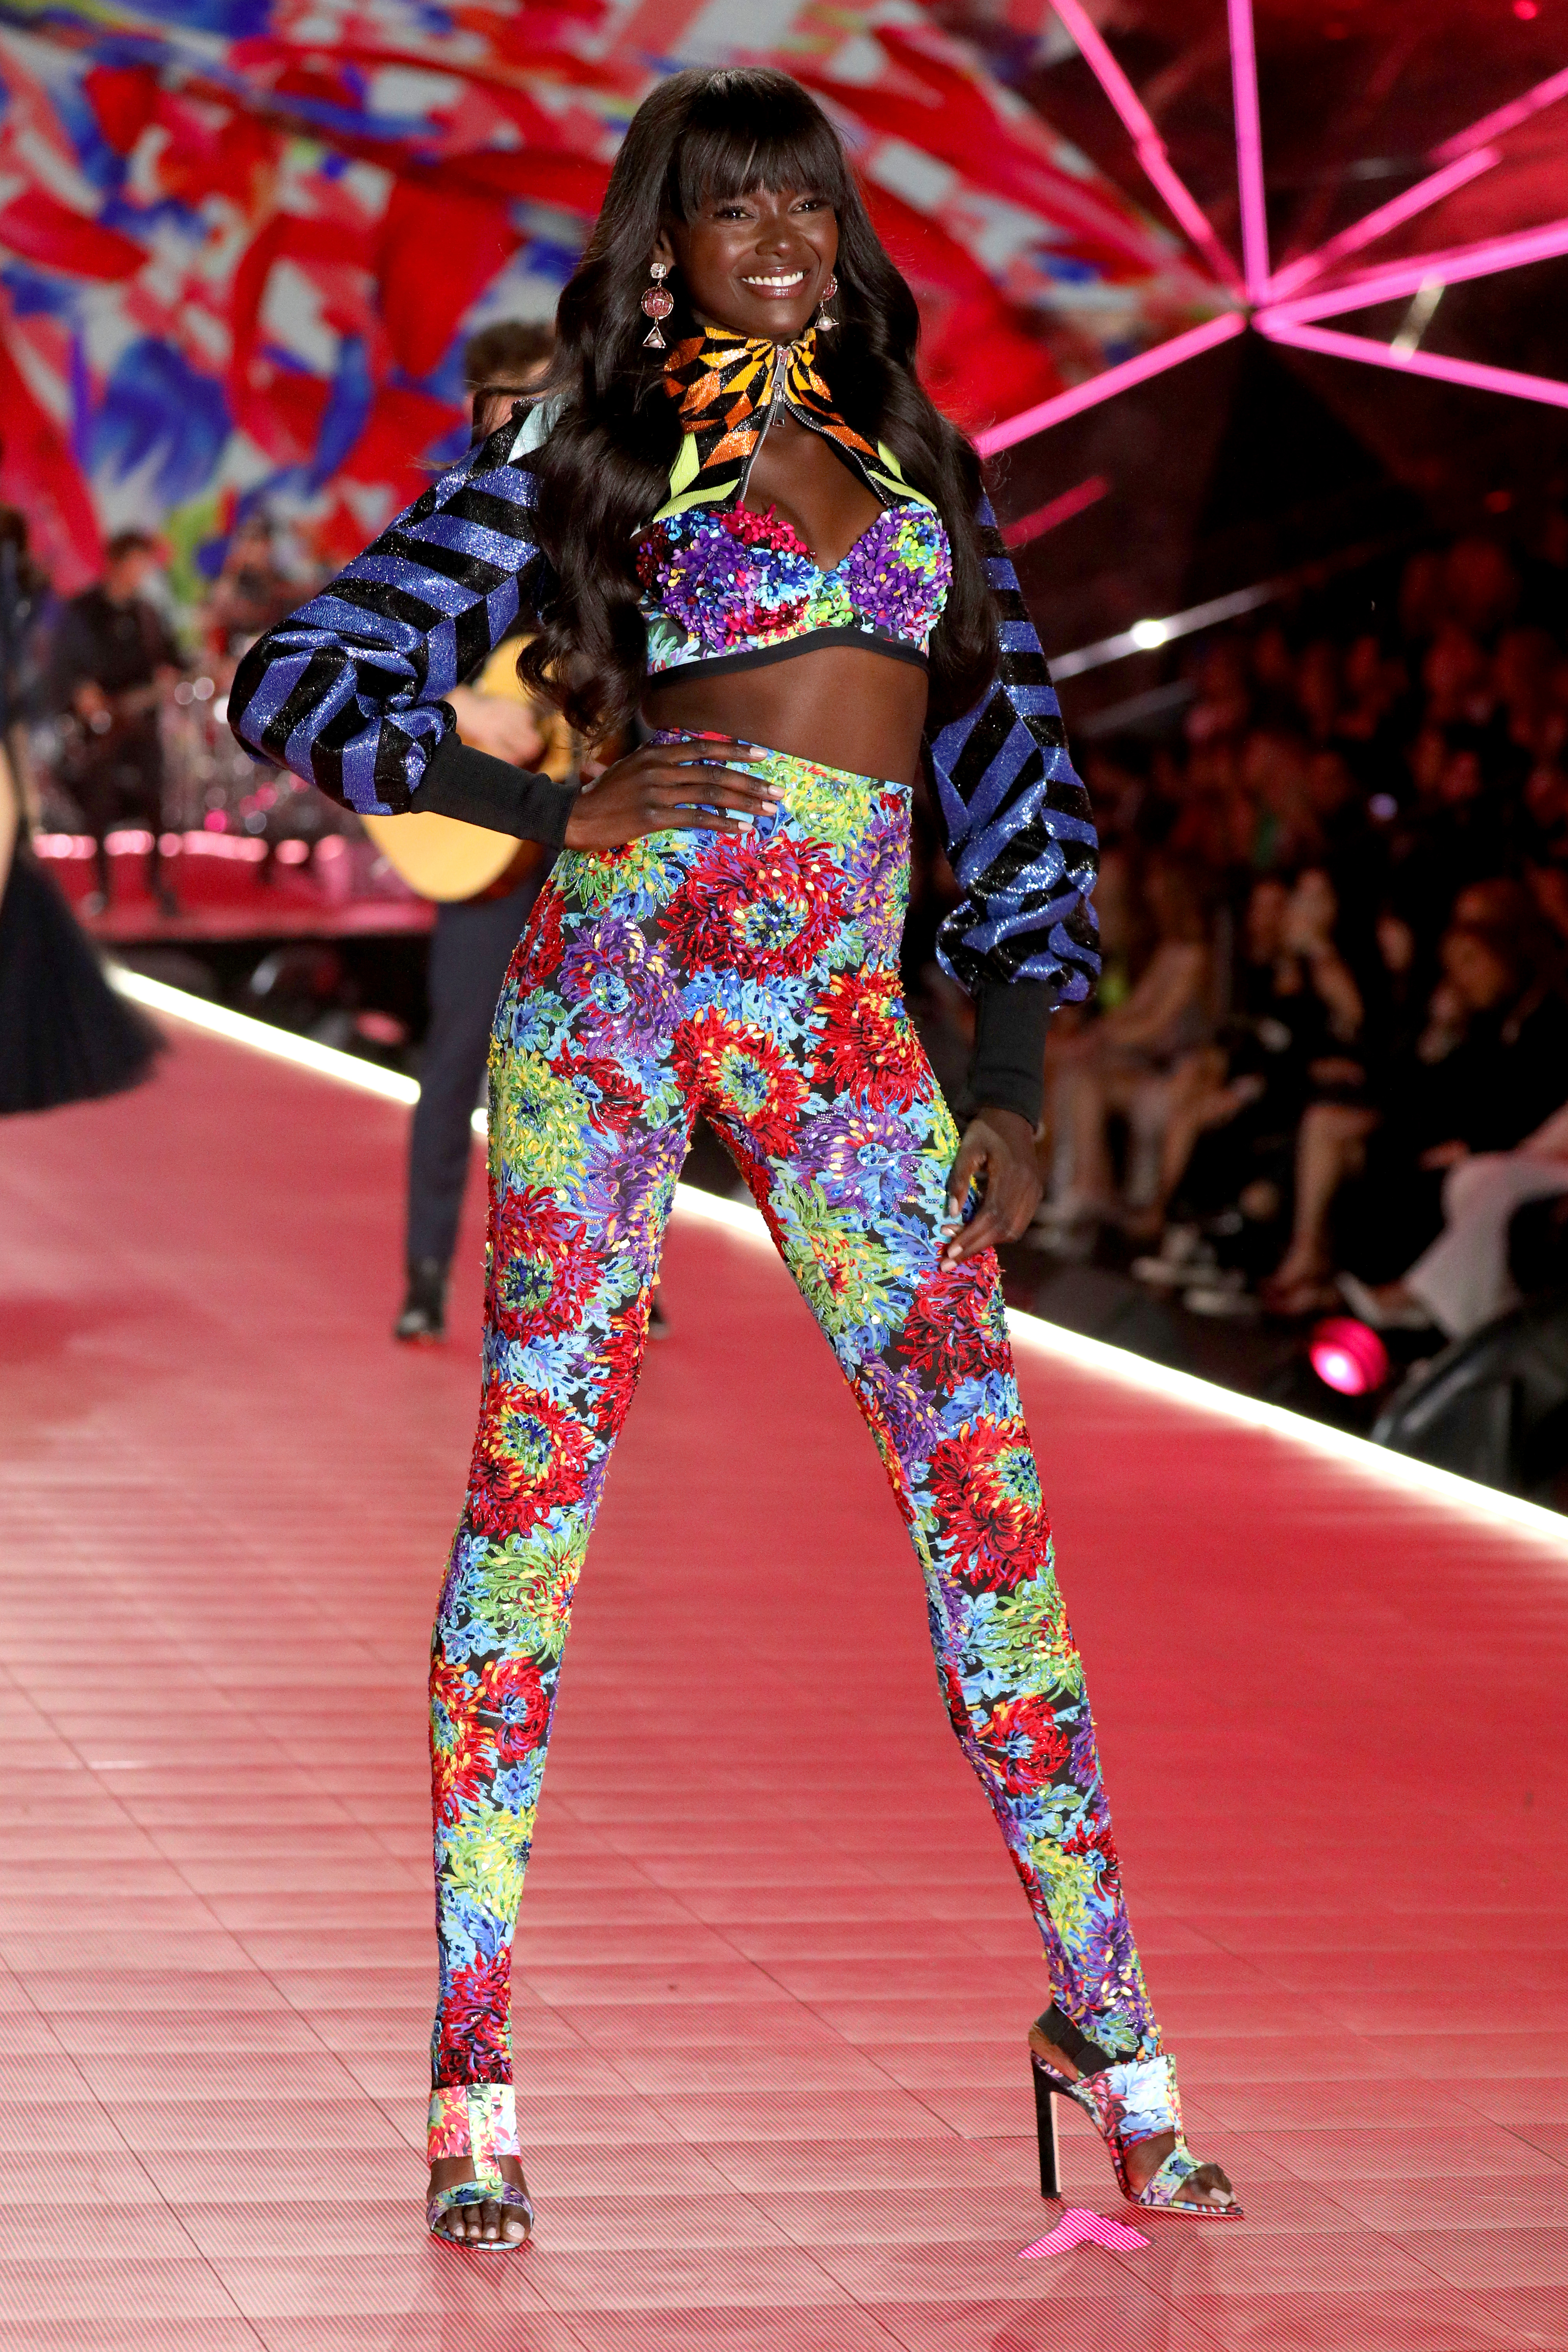 Duckie Thot walks the runway wearing Swarovski in the 2018 Victoria's Secret Fashion Show at Pier 94 on November 8, 2018, in New York City. (Getty Images)